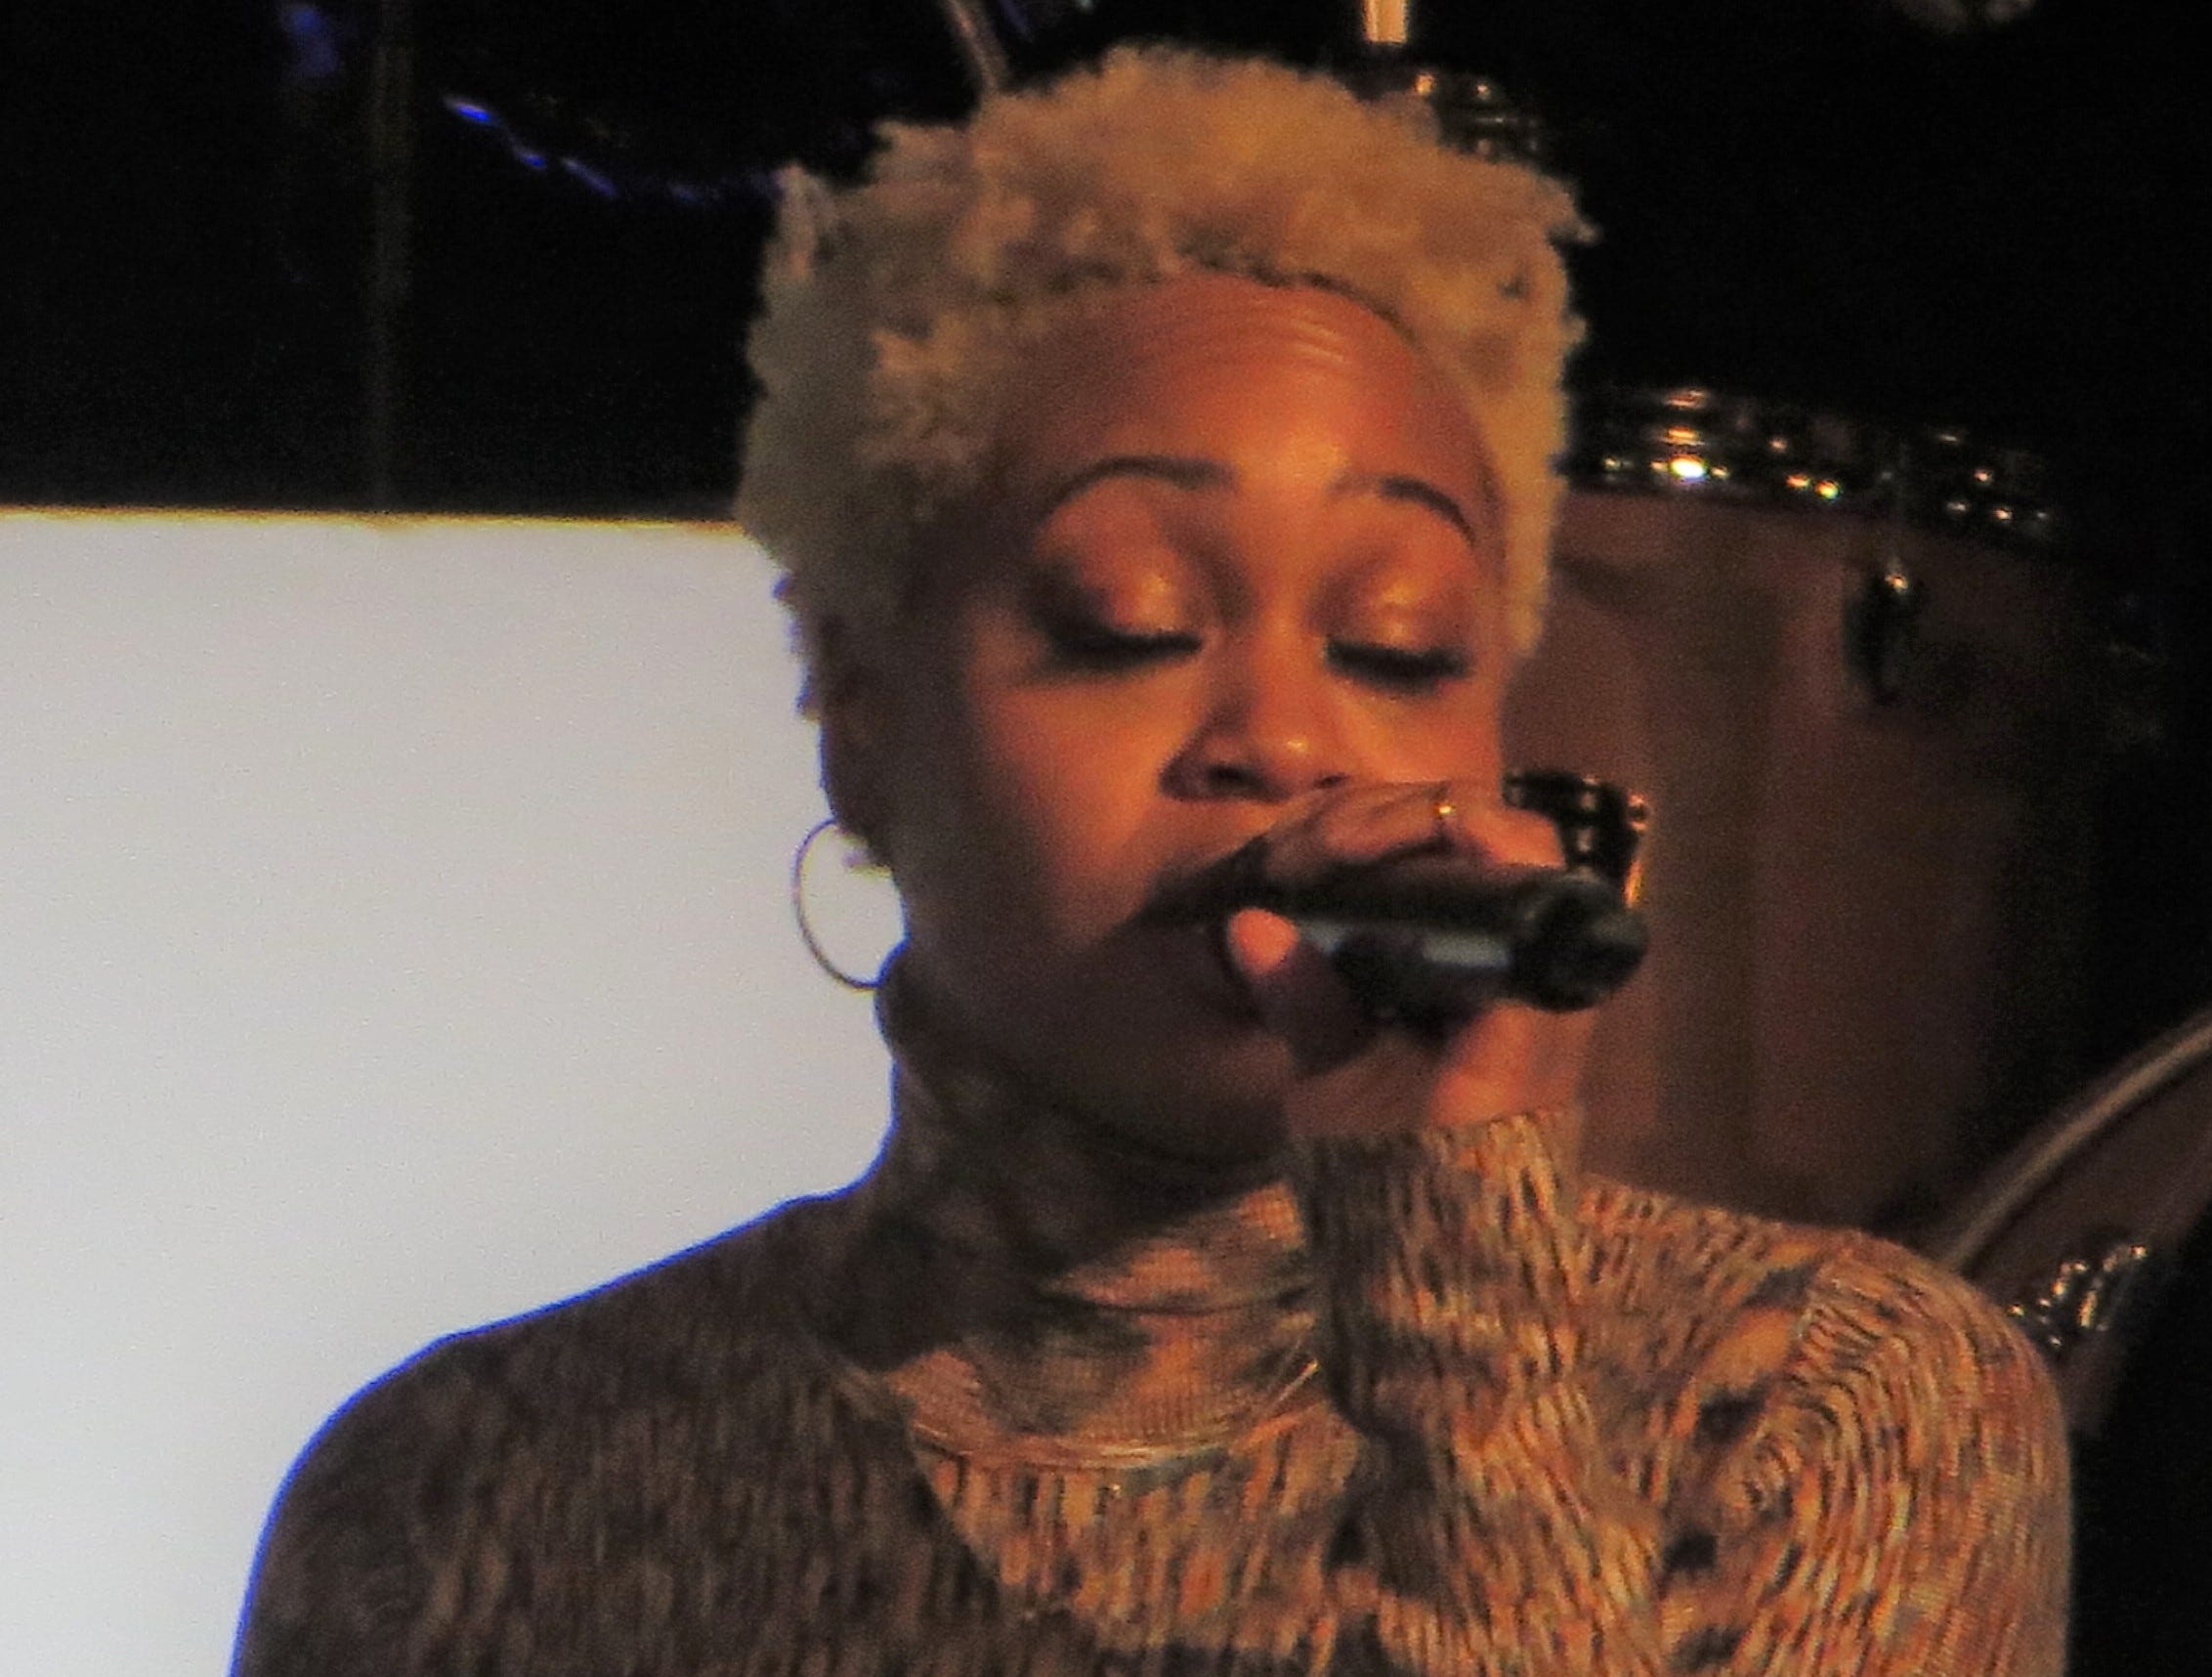 Tamika Lawrence performs during BroadwayCon Jukebox at BroadwayCon 2019, held Jan. 11 to 13, 2019, at the New York Hilton Midtown in Manhattan.